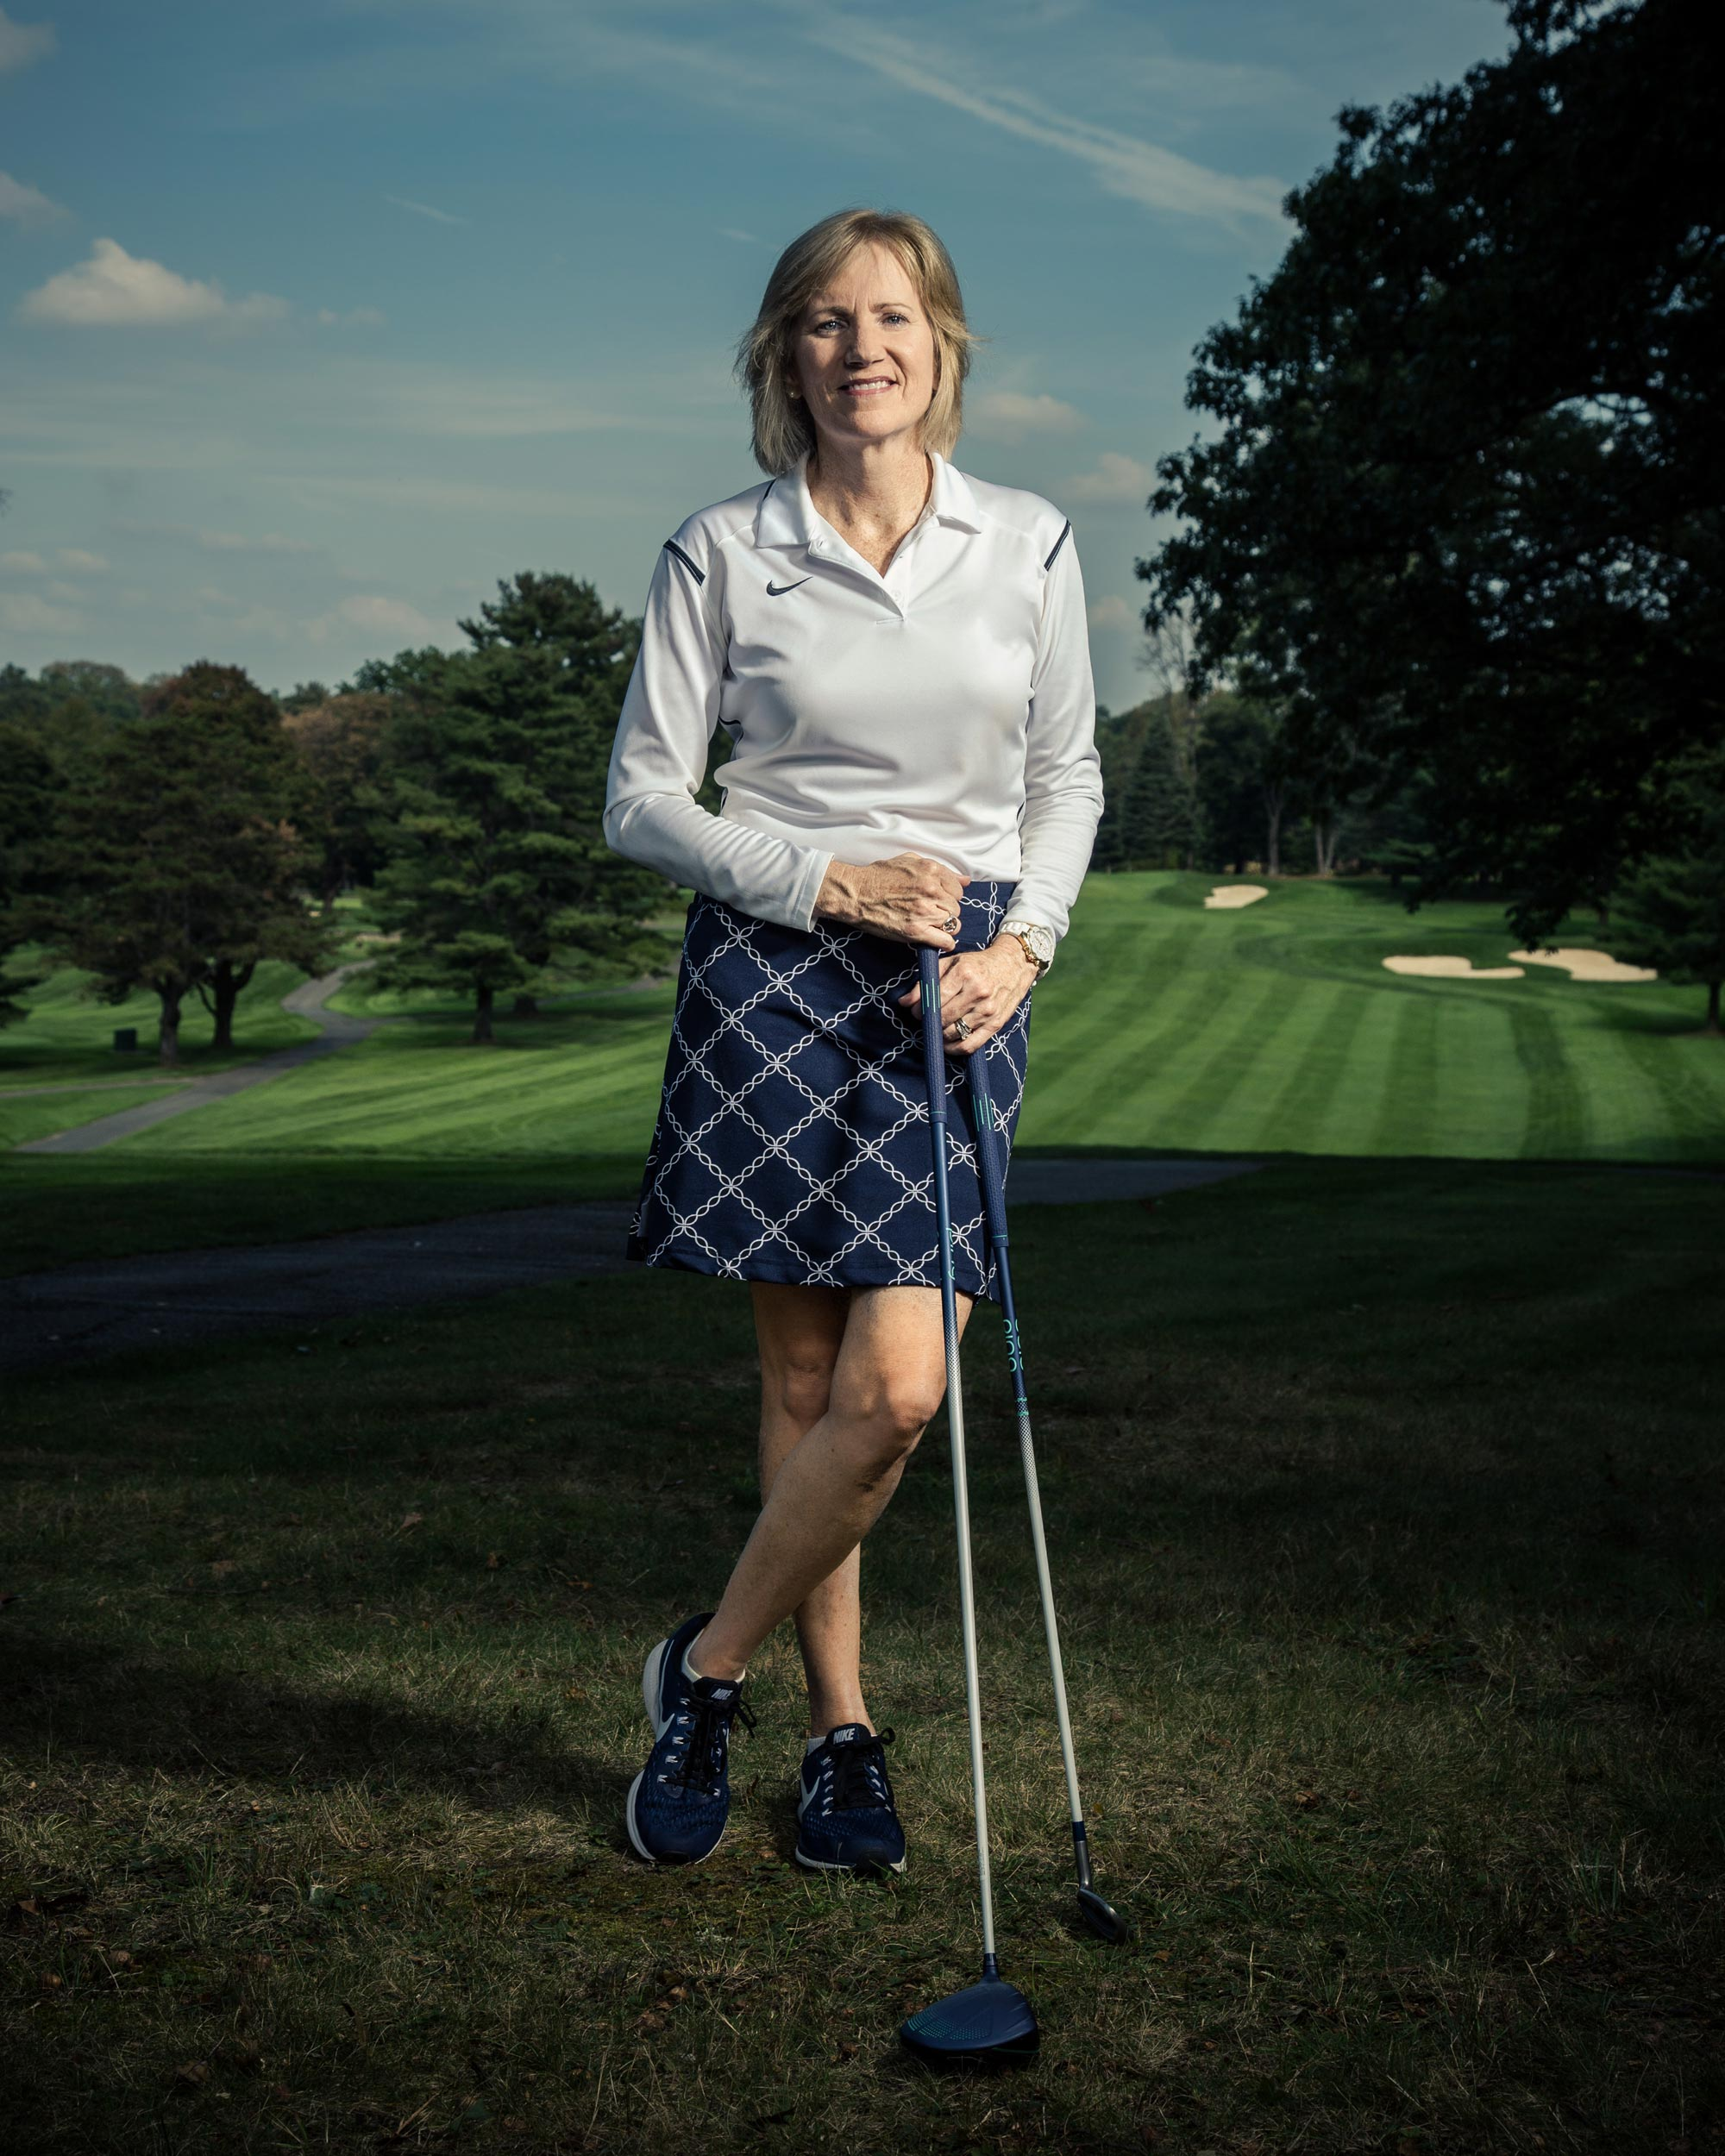 Maura Ballard, Golf Coach, Drew University